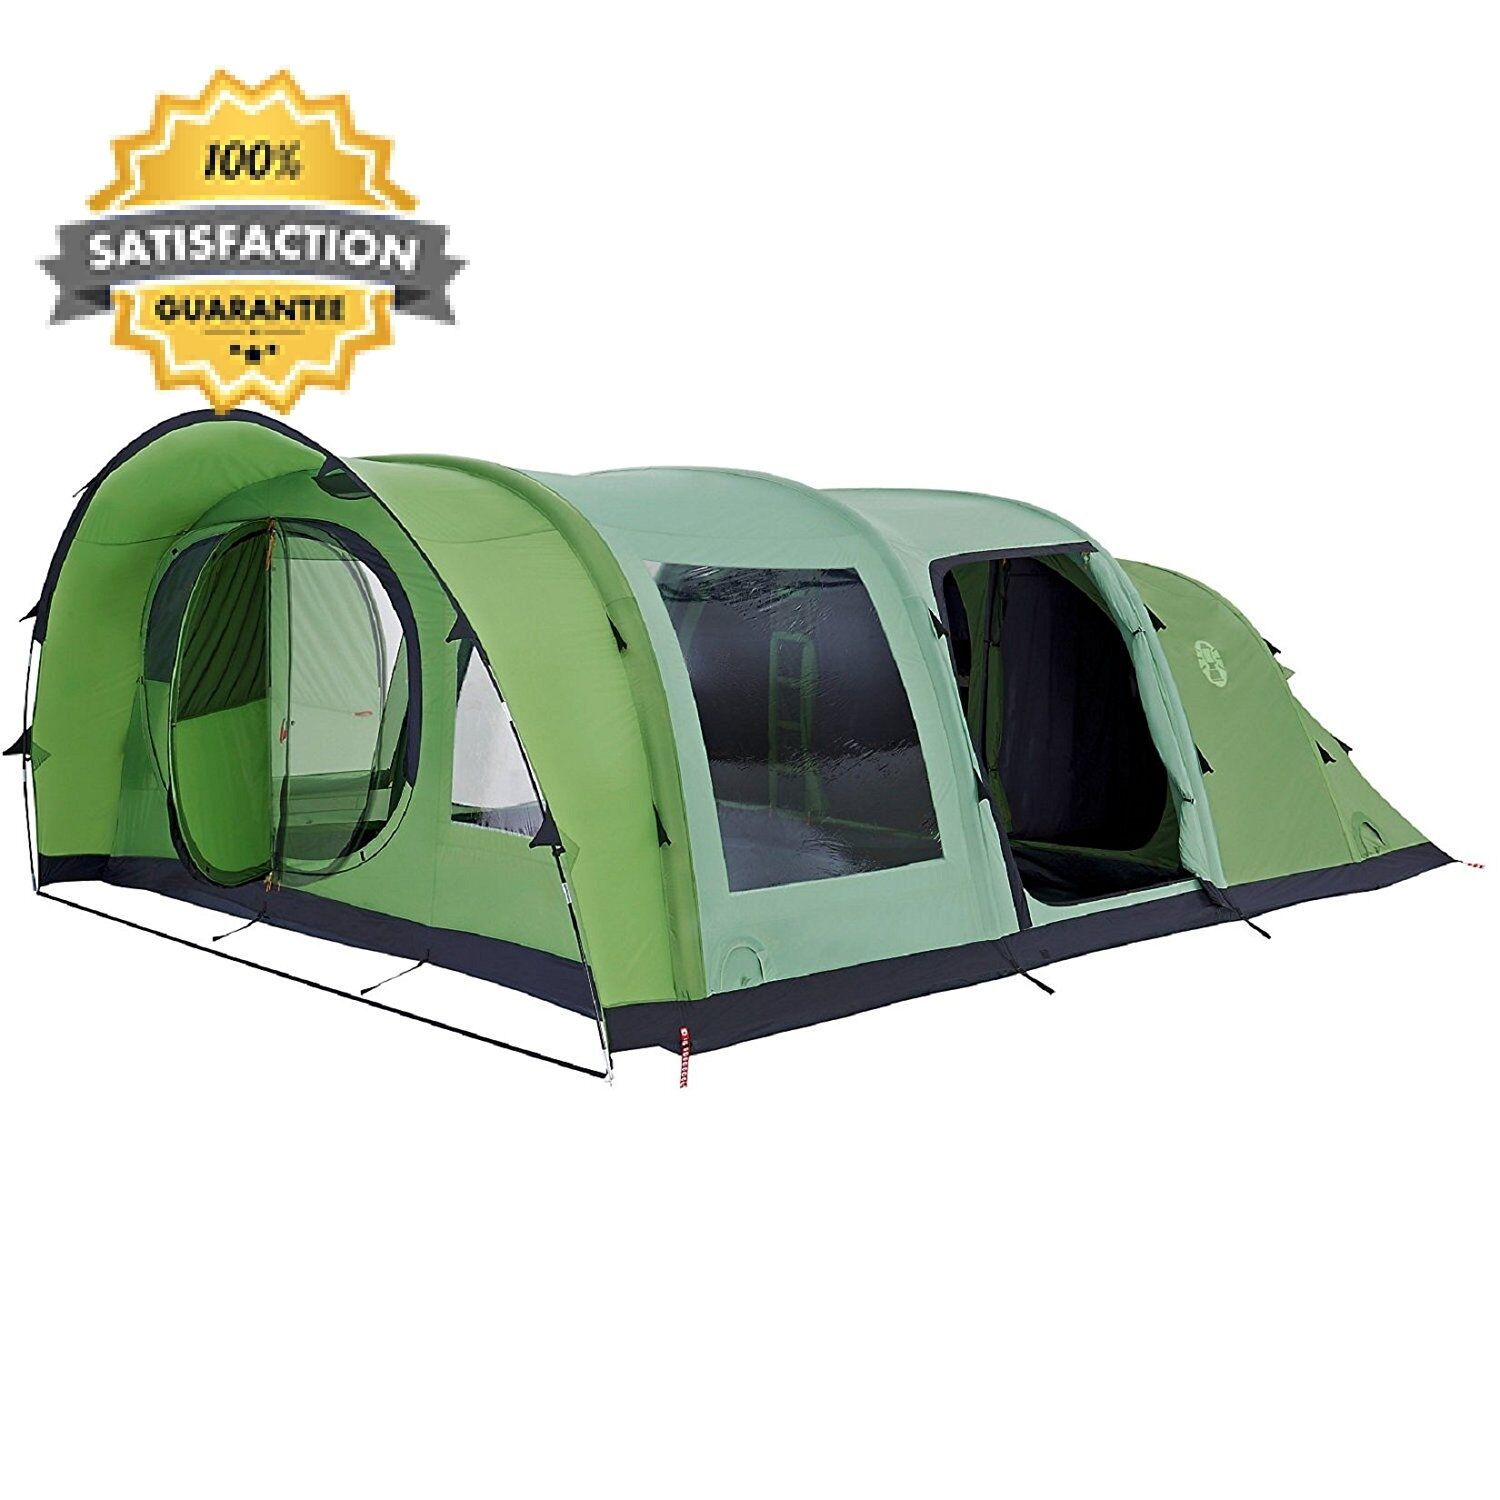 Inflatable FastPitch  Air Valdes Tent, XL 6 Person, Pump & Manometer Included  be in great demand